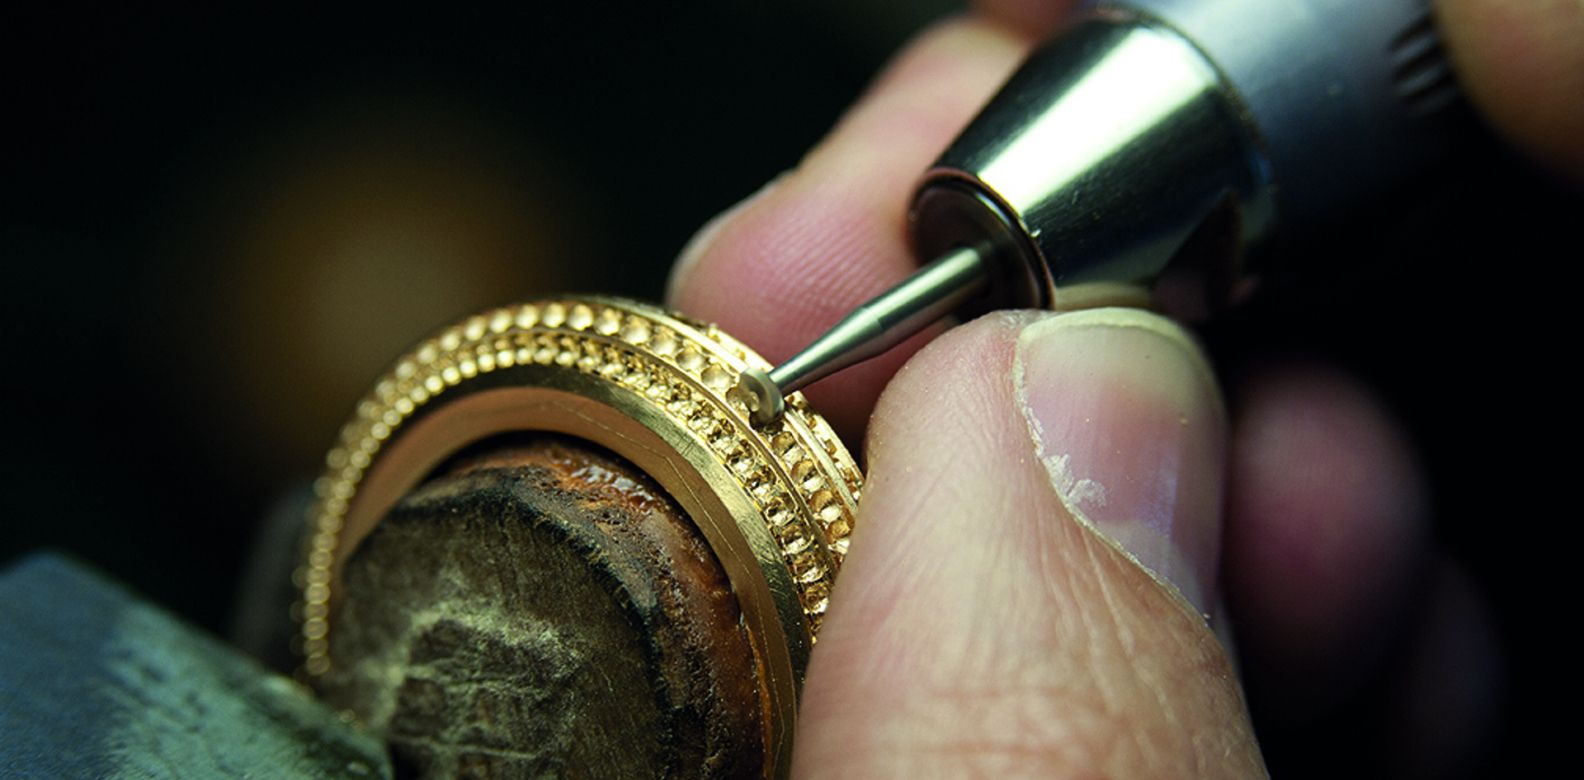 With craftsmanship, it's all about the details